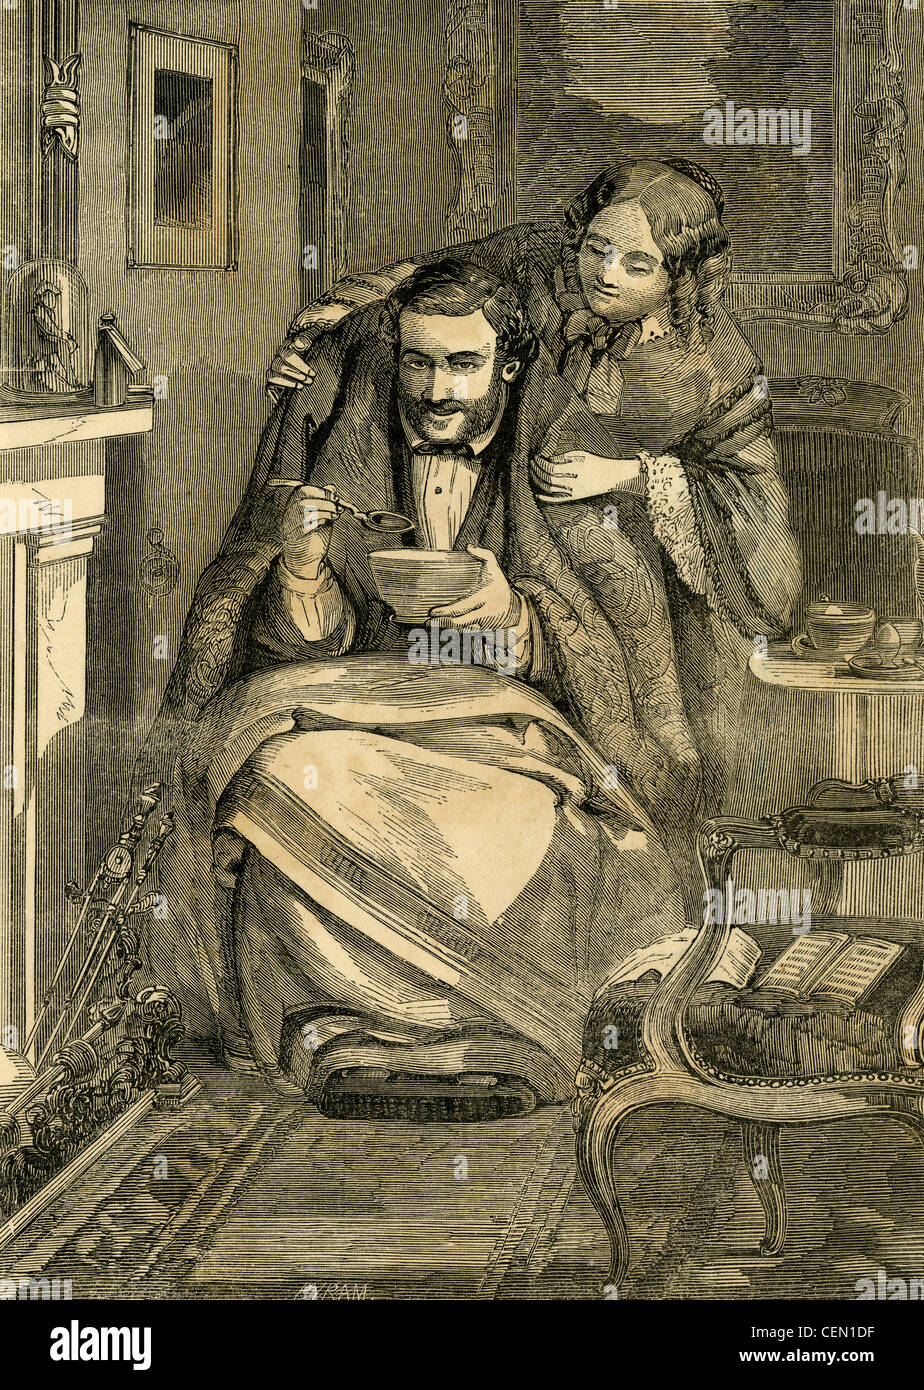 Circa 1850s engraving, Married and Happy. - Stock Image